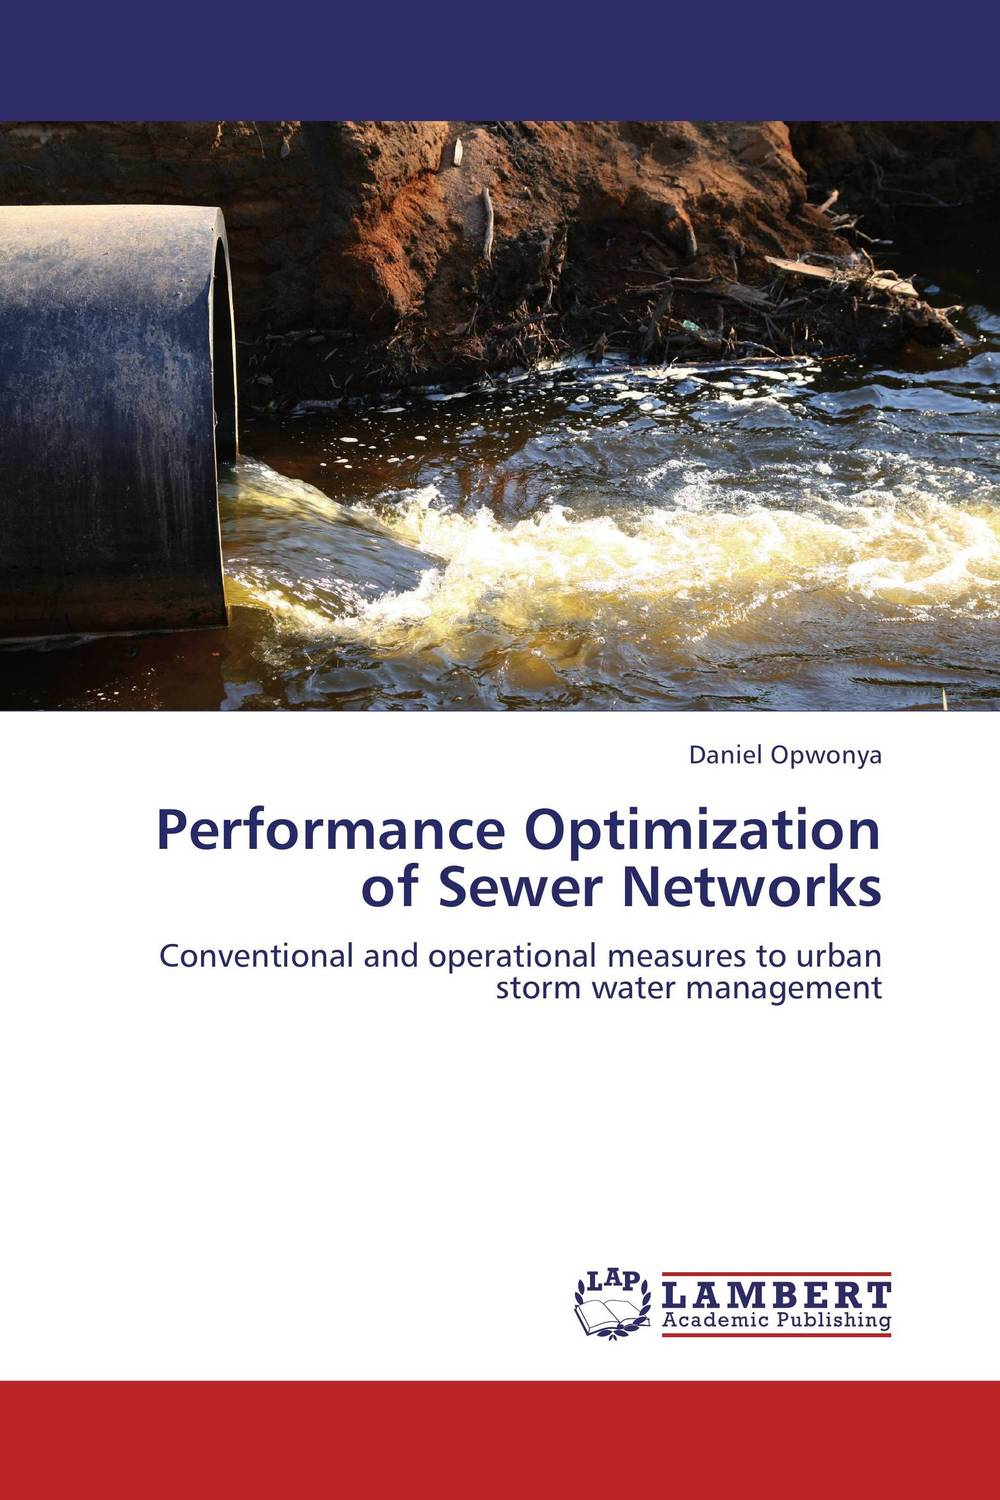 Performance Optimization of Sewer Networks james blunt nuremberg